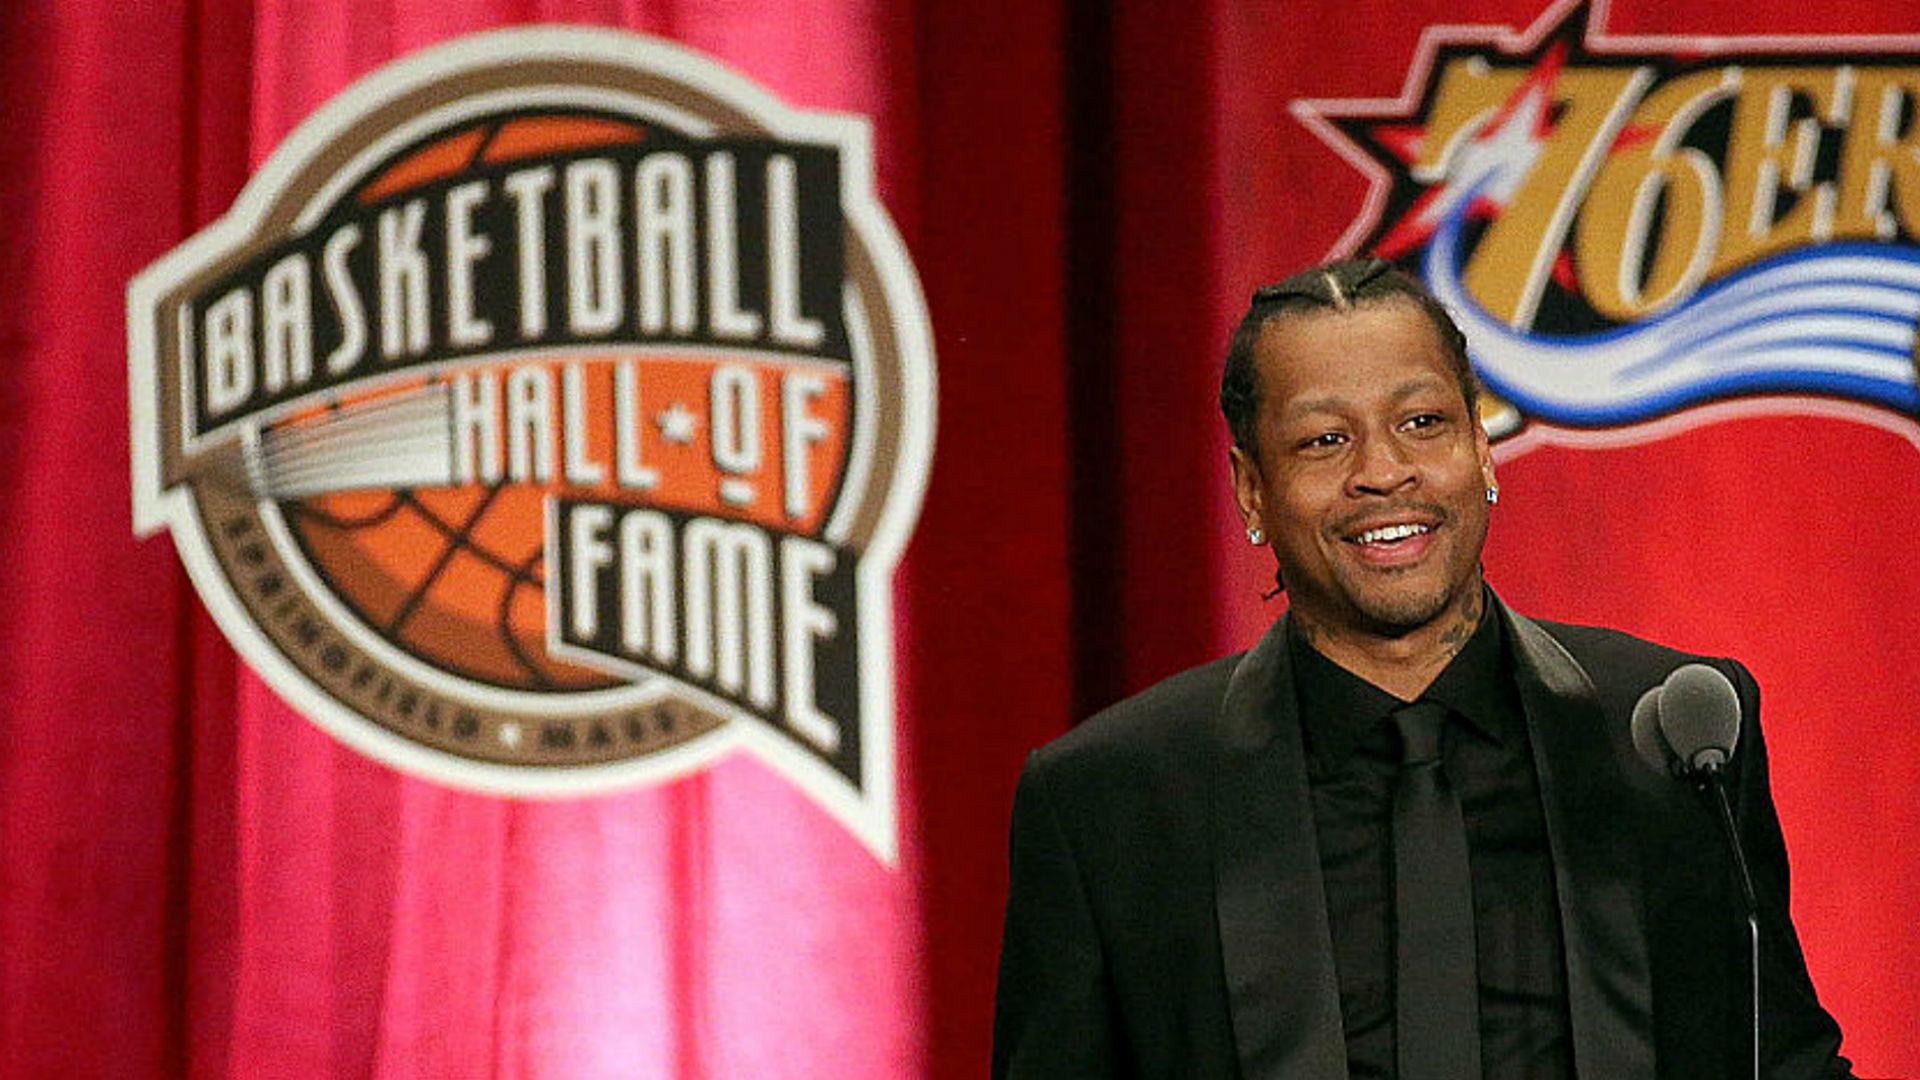 Alleniverson-halloffame-gettyimages-ftr_qrqbpcayi6sl105f08pgdy2md